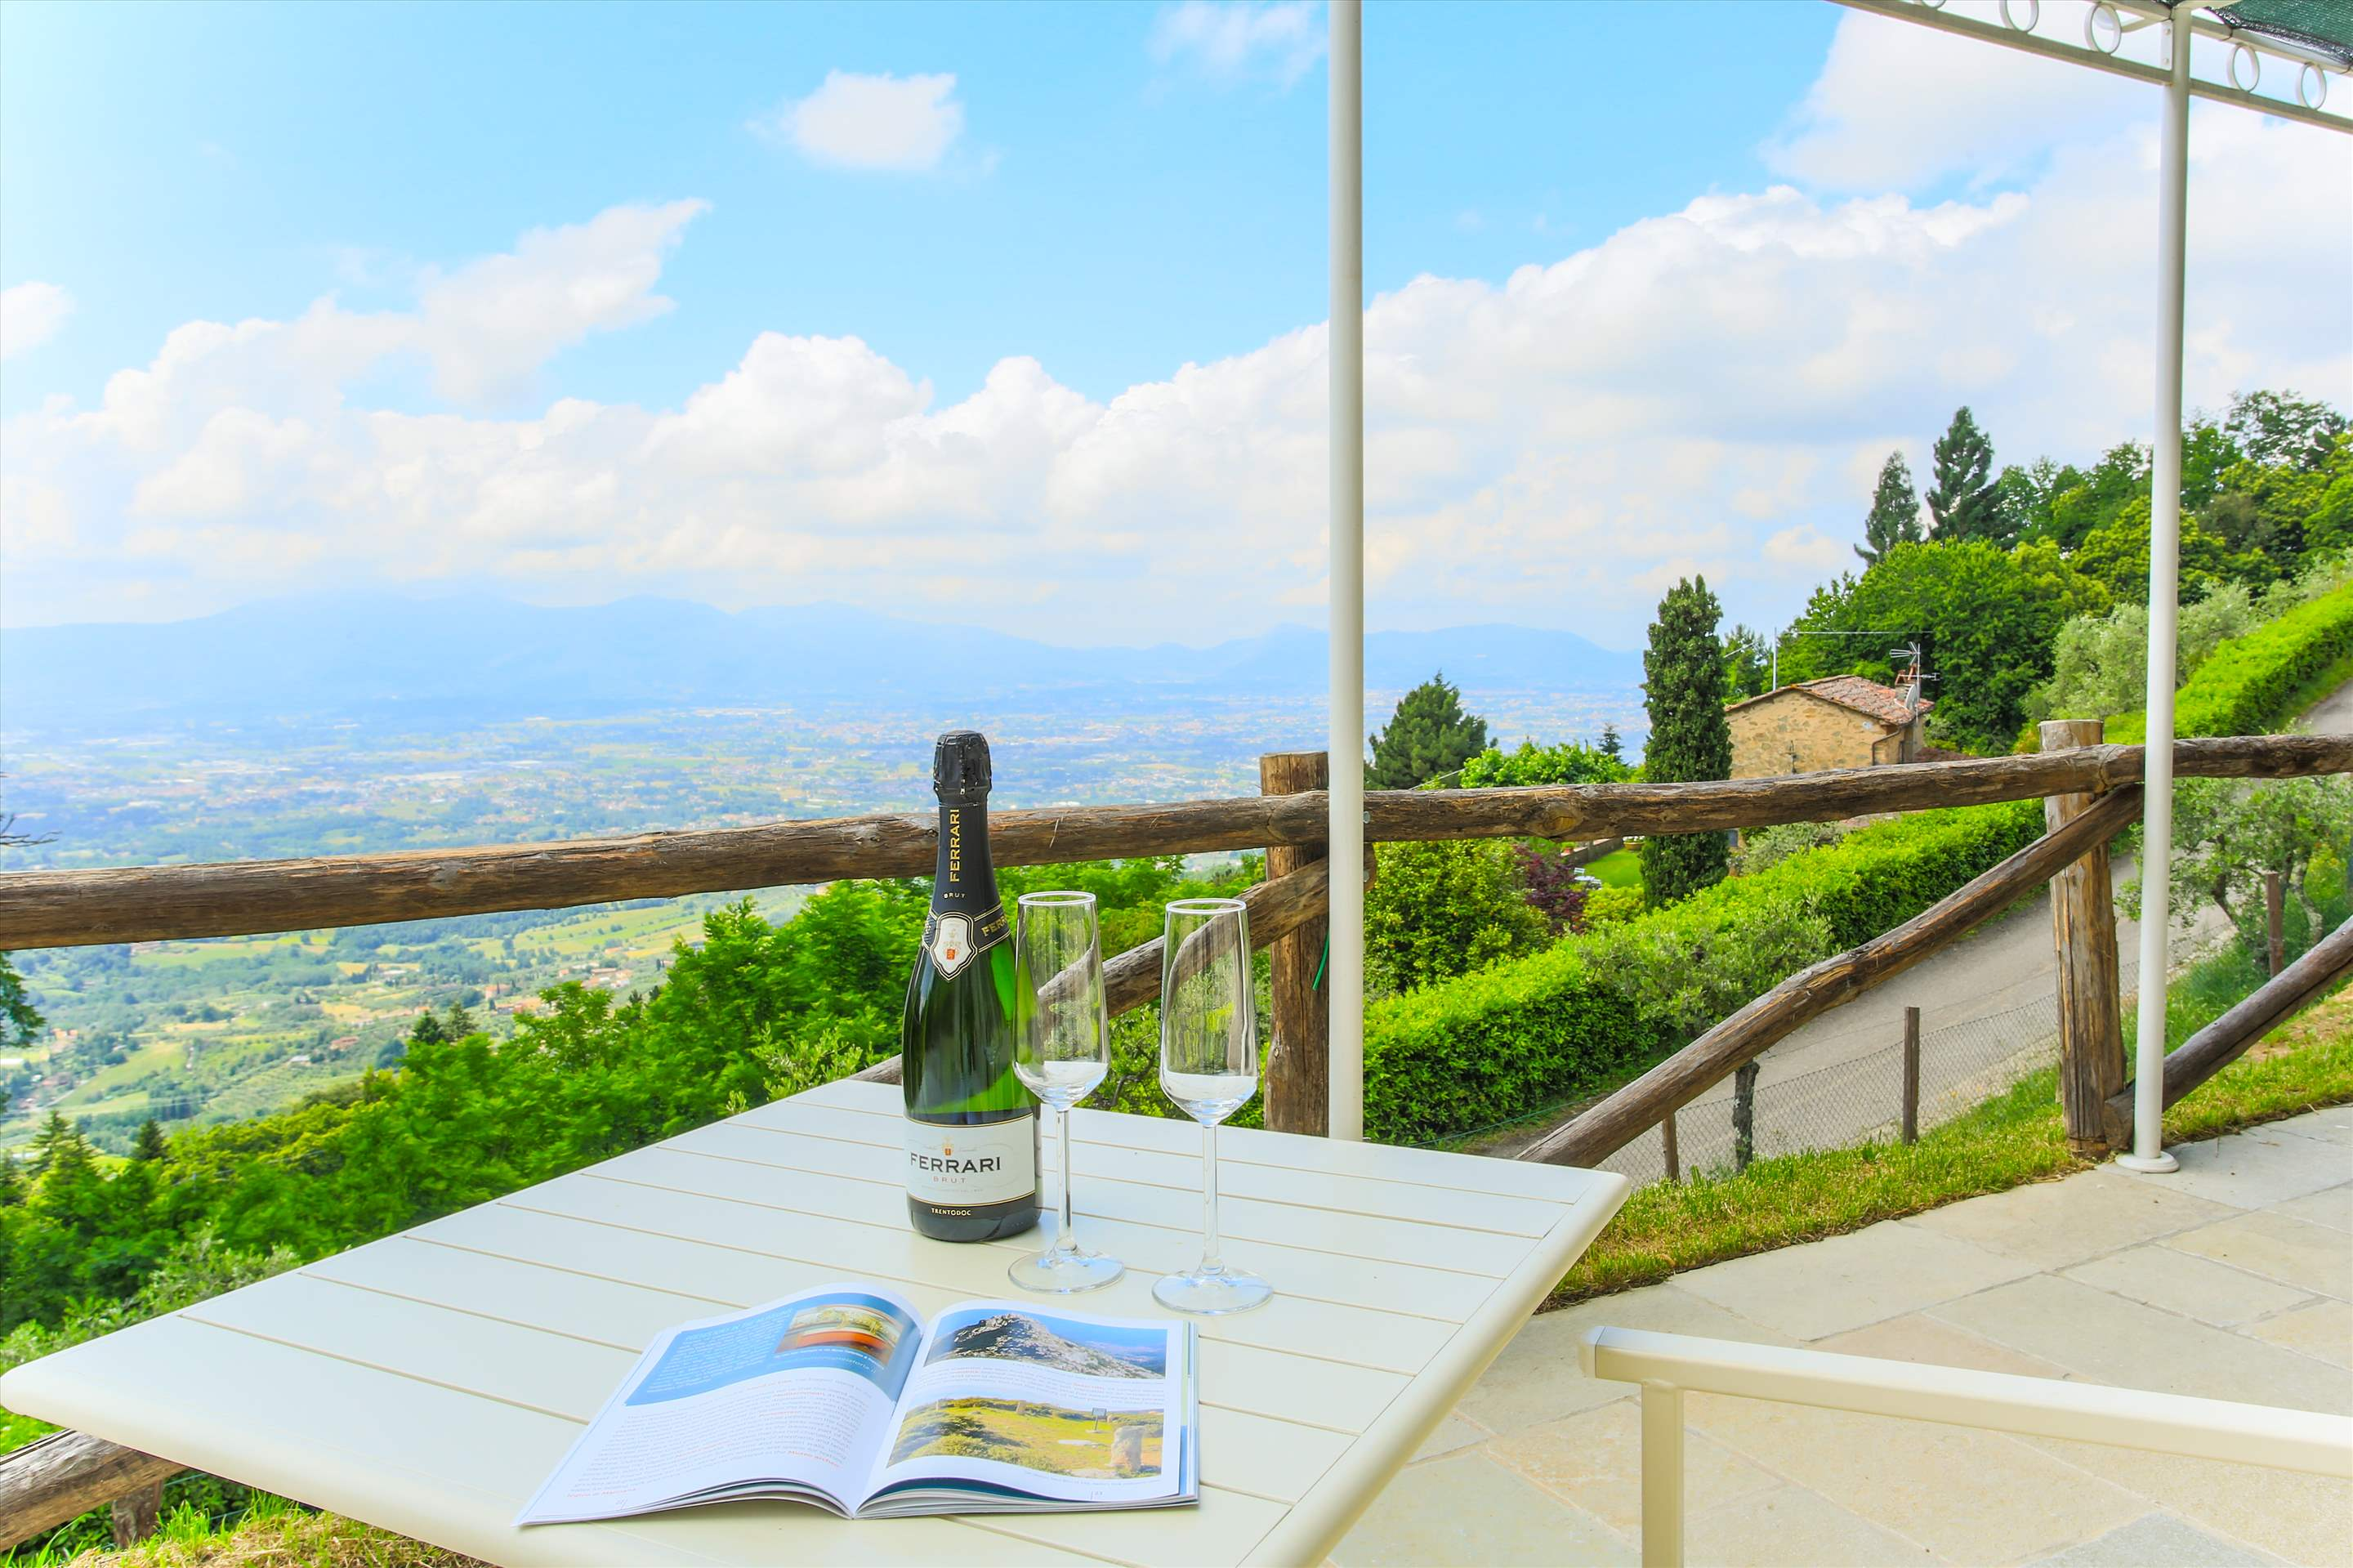 Villa Panorama, 3 bedroom villa in North Tuscany - Pisa & Lucca Area, Tuscany Photo #4